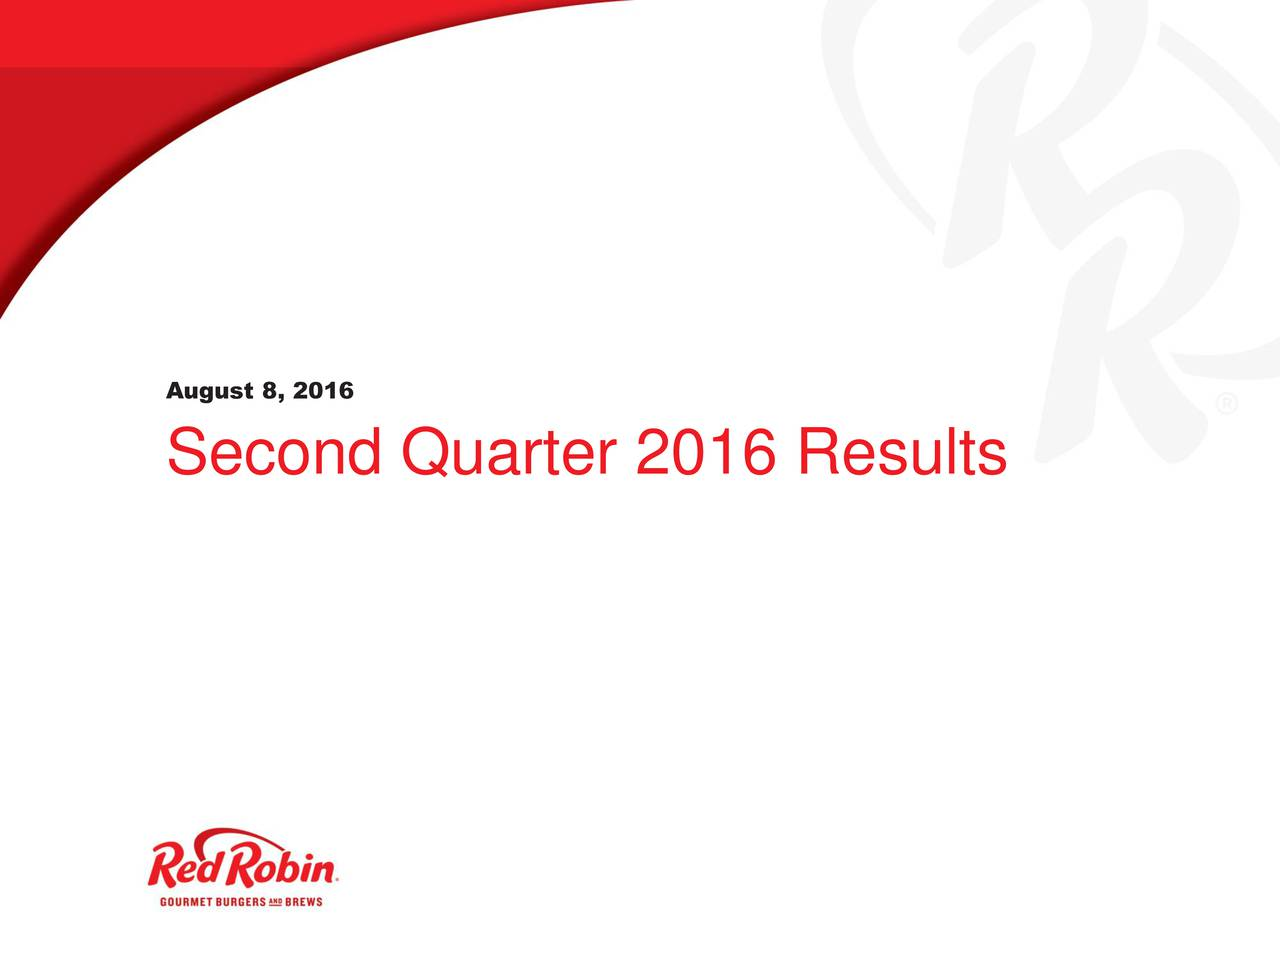 August 8, 2016 Second Quarter 2016 Results